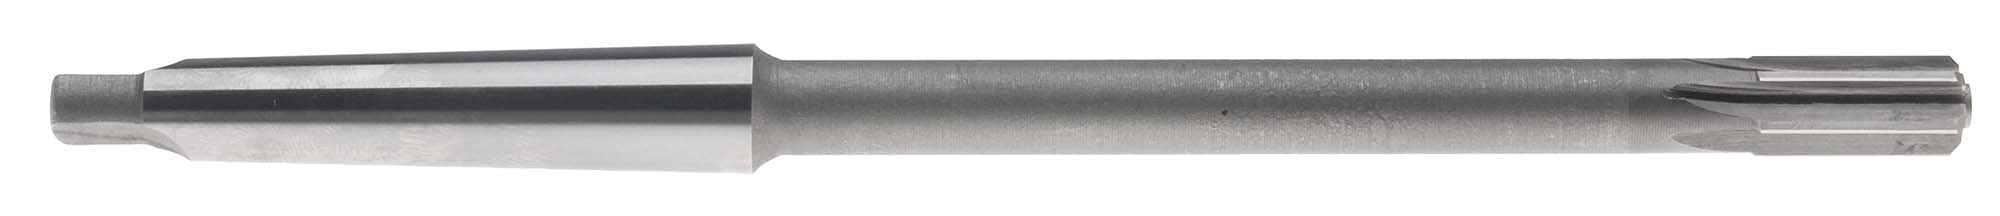 "1-1/16"" Expanding Machine Reamer, Taper Shank, High Speed Steel"